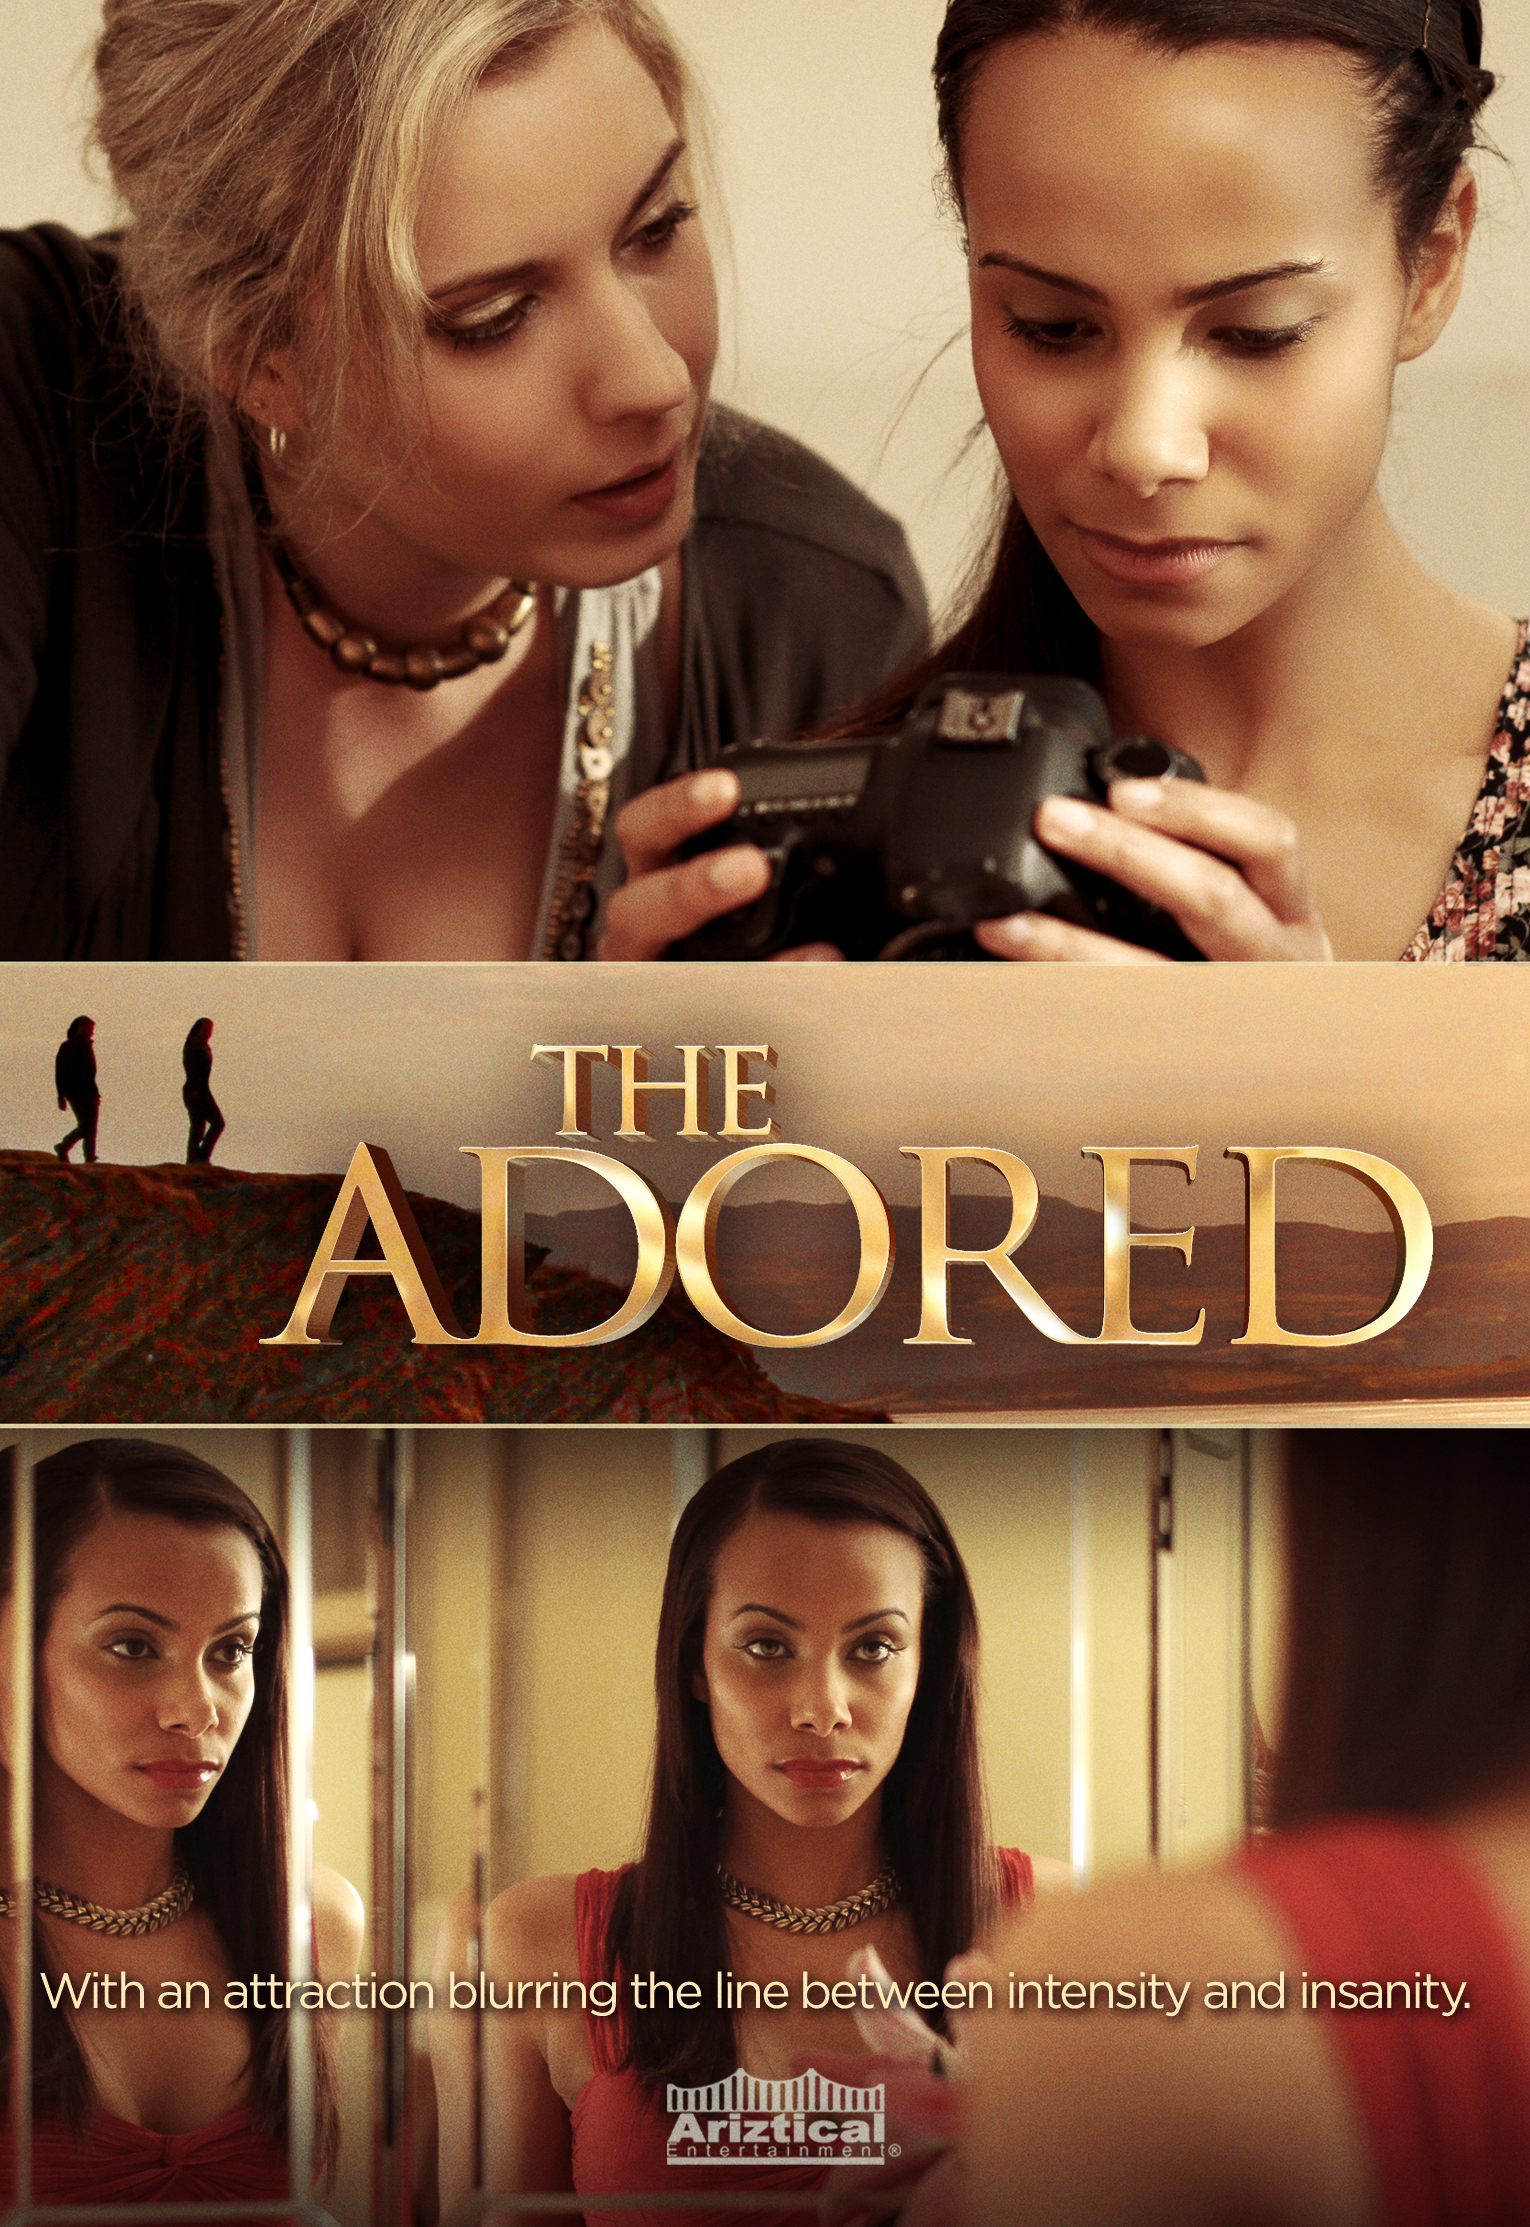 the adored movie watch online free